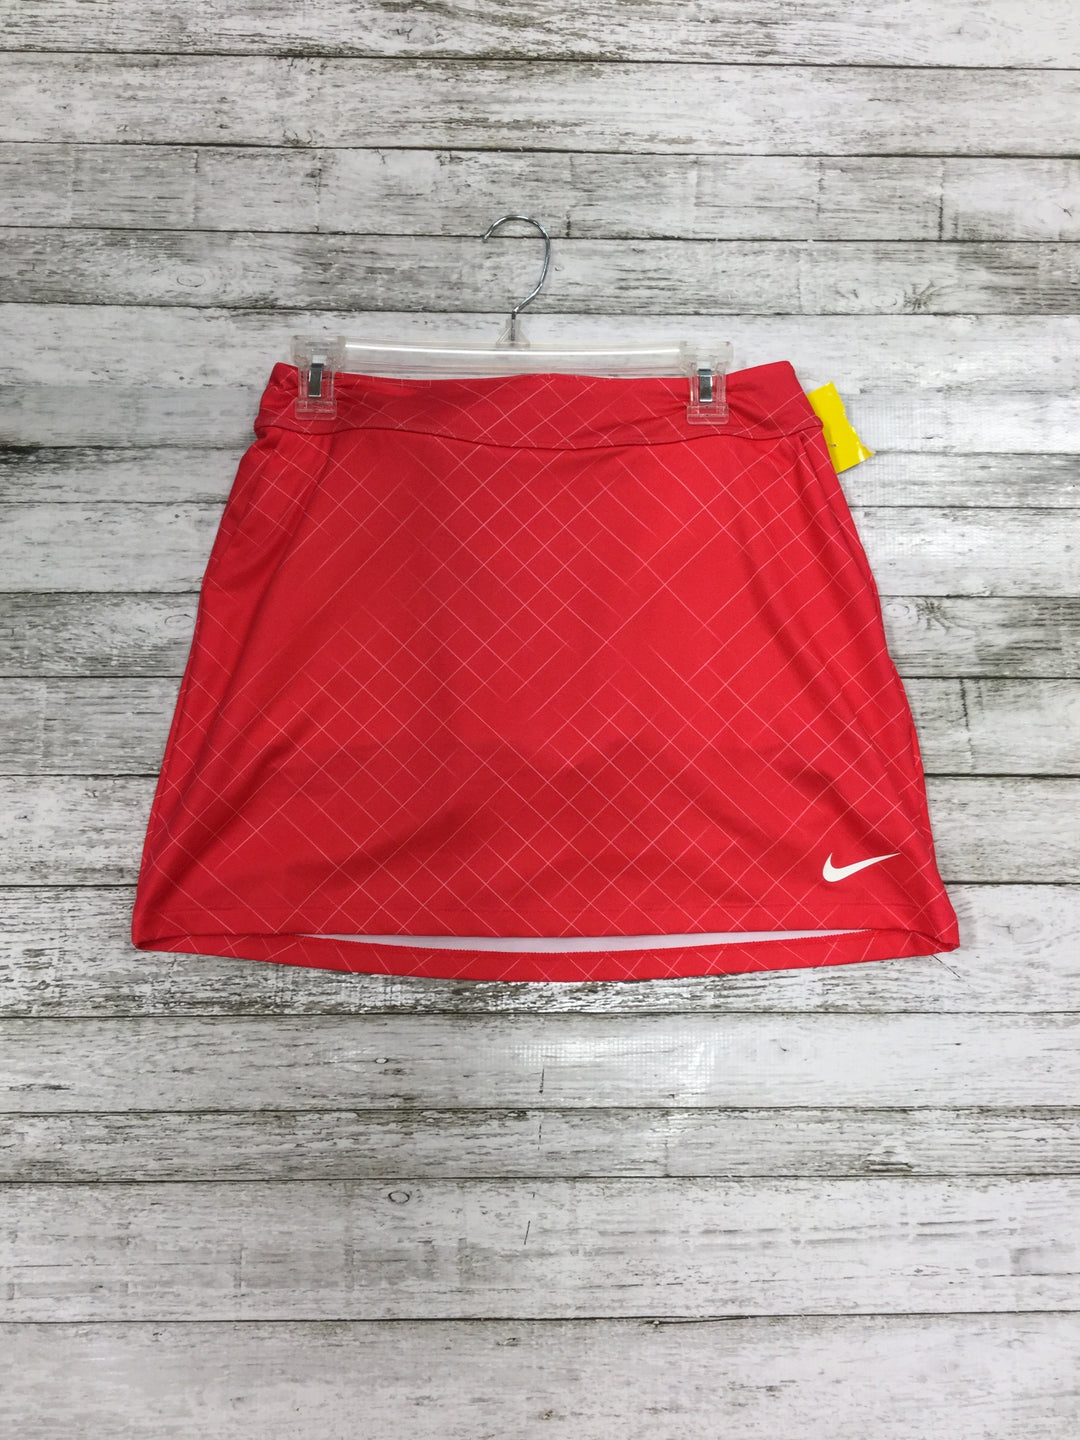 Primary Photo - BRAND: NIKE APPAREL , STYLE: ATHLETIC SKIRT SKORT , COLOR: PINK , SIZE: S , SKU: 127-2767-89610